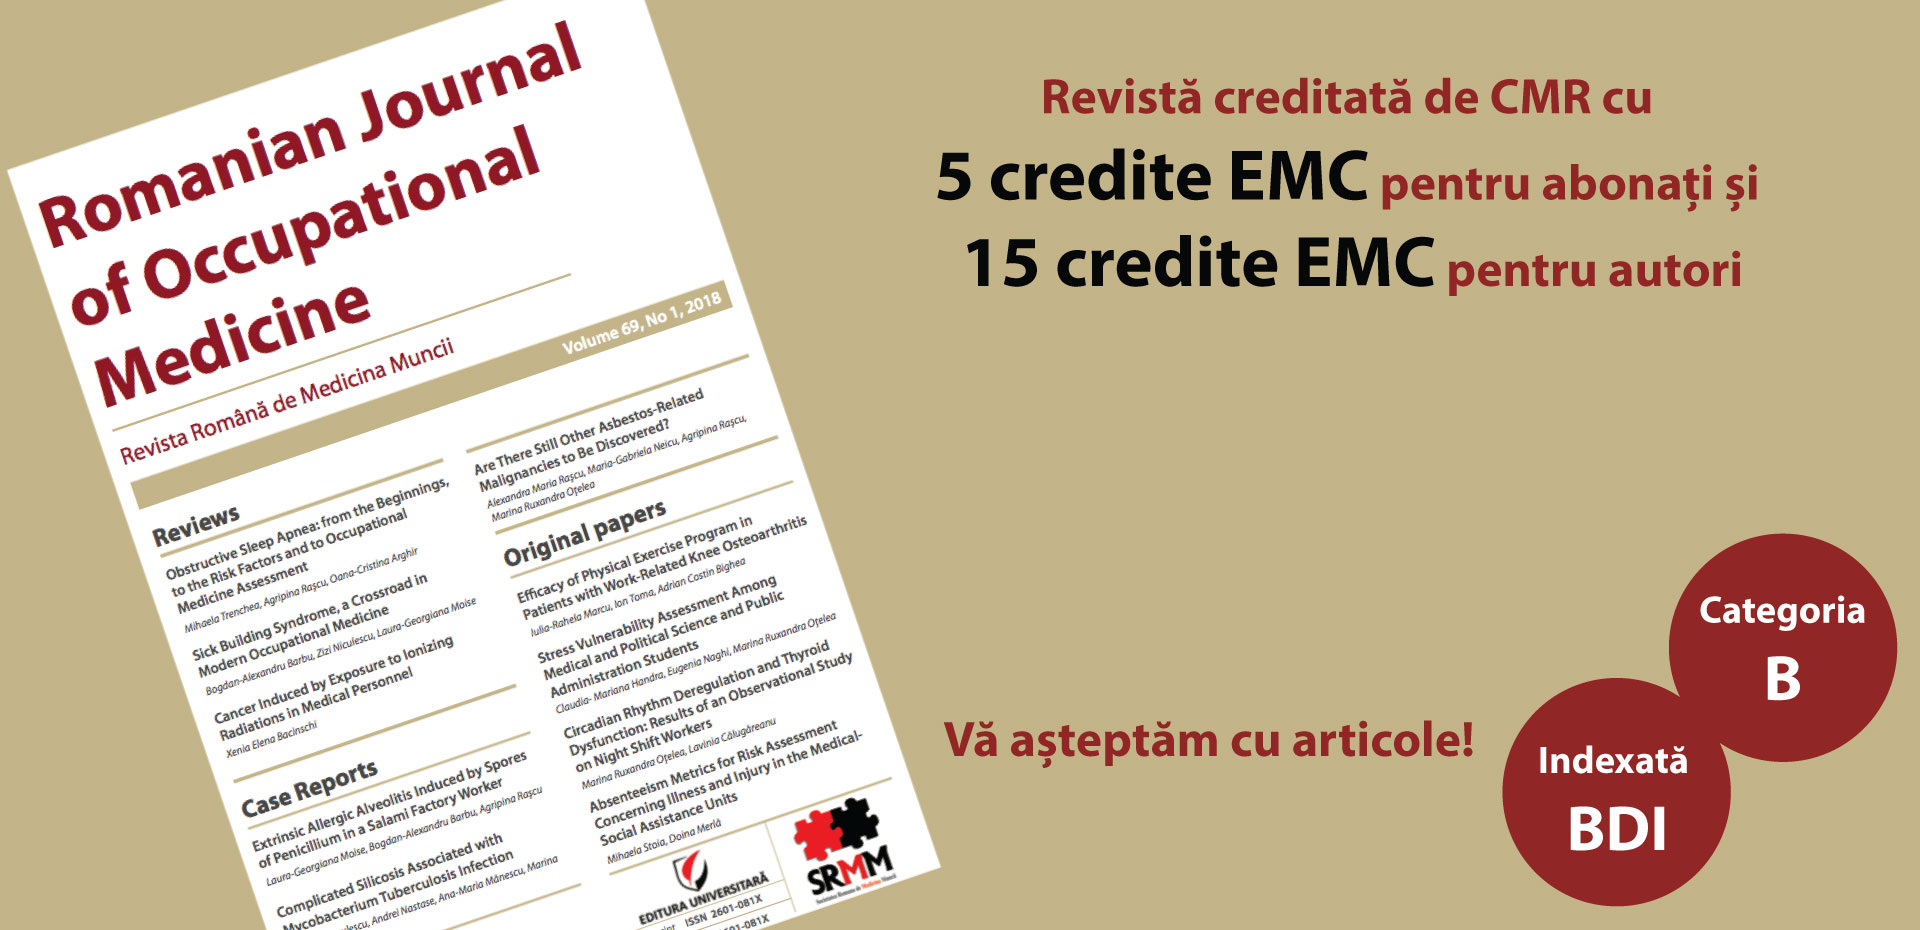 ROMANIAN JOURNAL OF OCCUPATIONAL MEDICINE